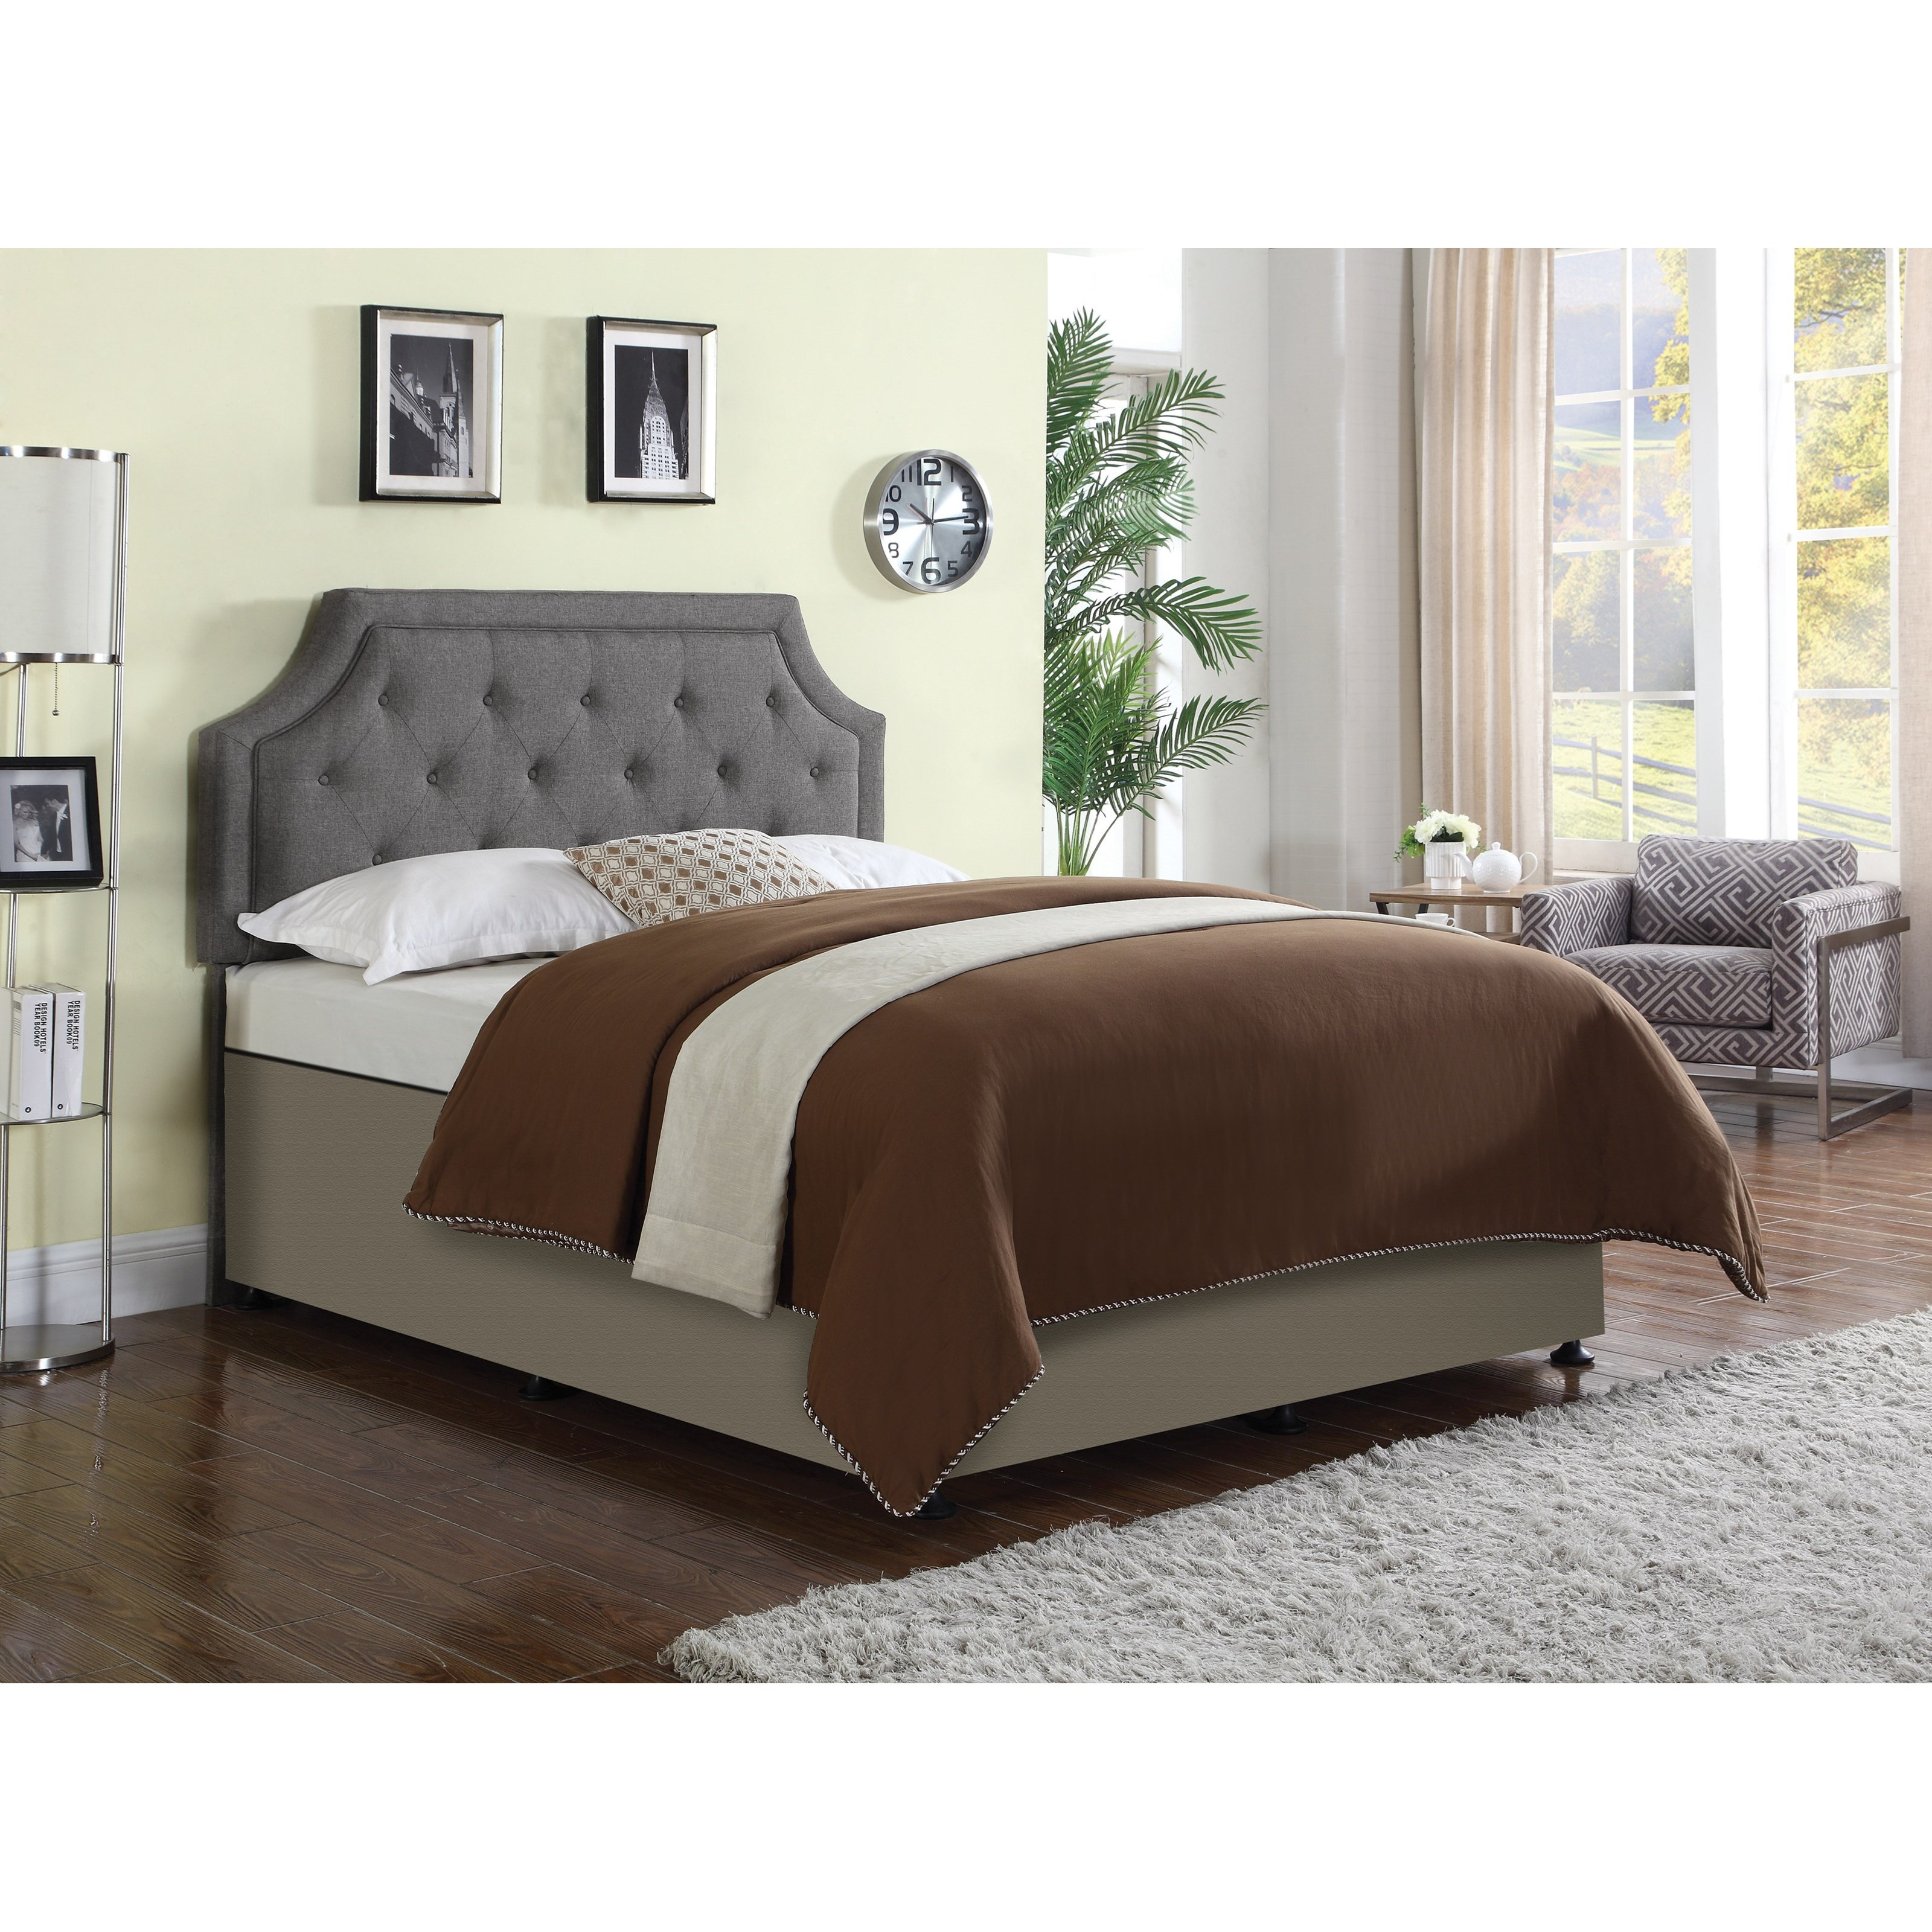 Coaster 301023qf Rushford Grey Upholstered Headboard Available In Queen And King Size Curley S Furniture Store Des Moines Iowa